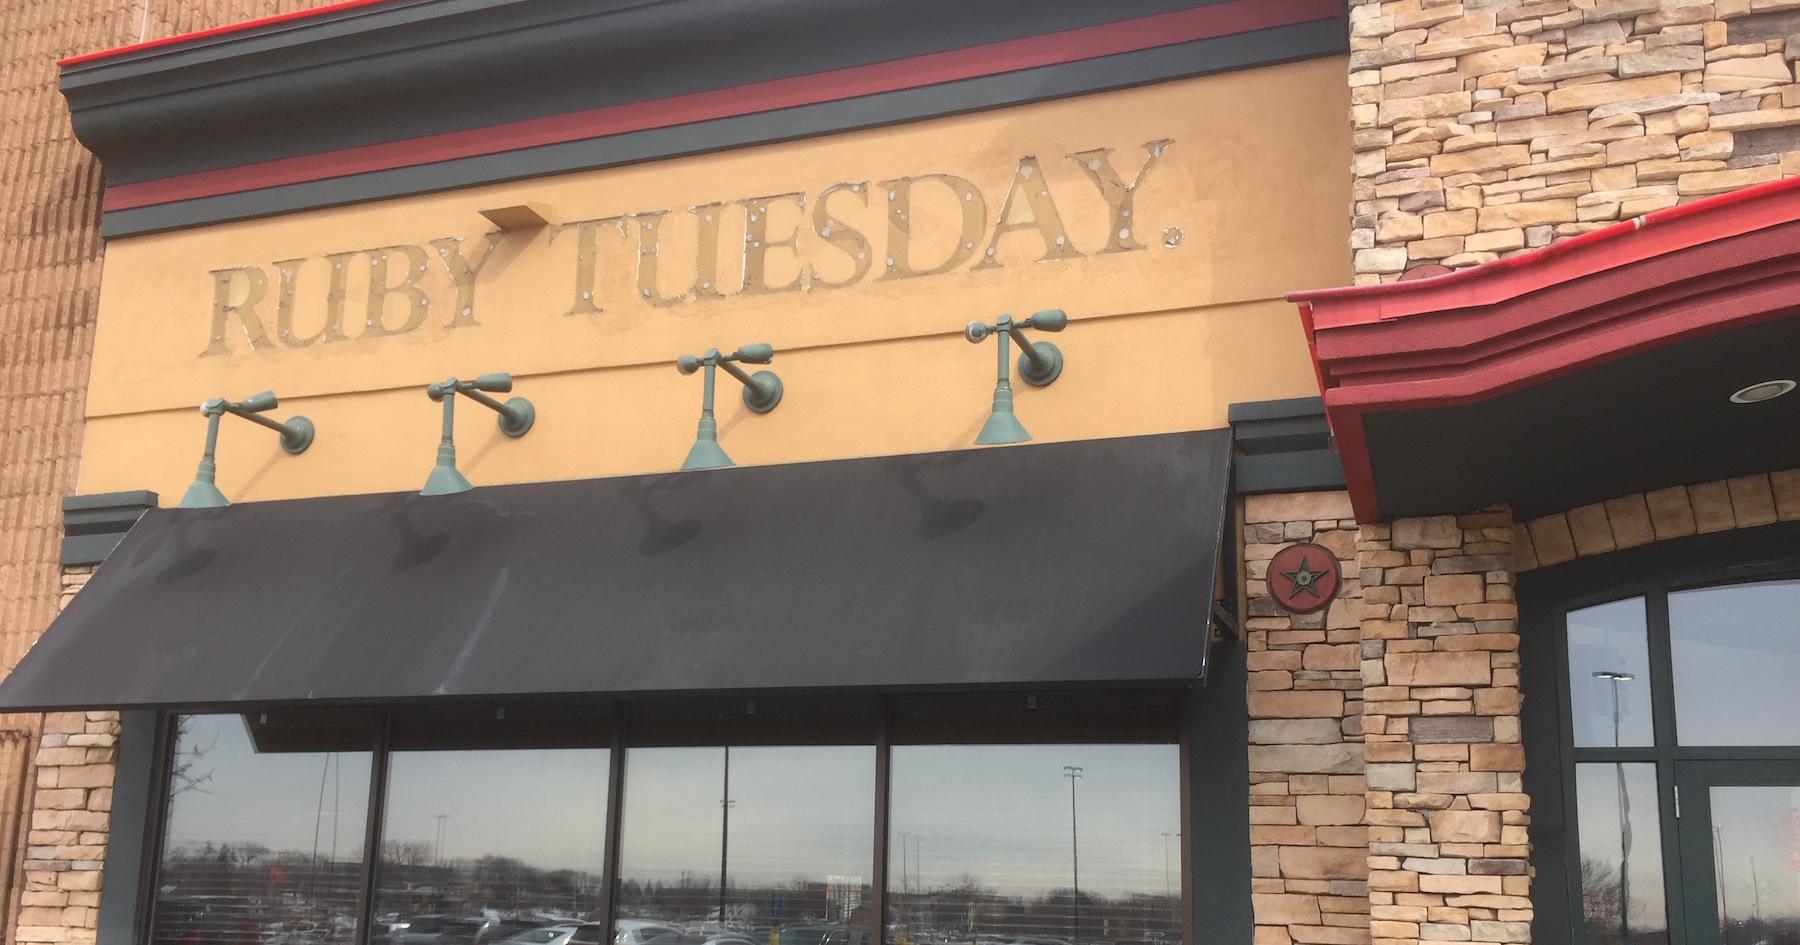 Ruby Tuesday has closed 51 locations this year